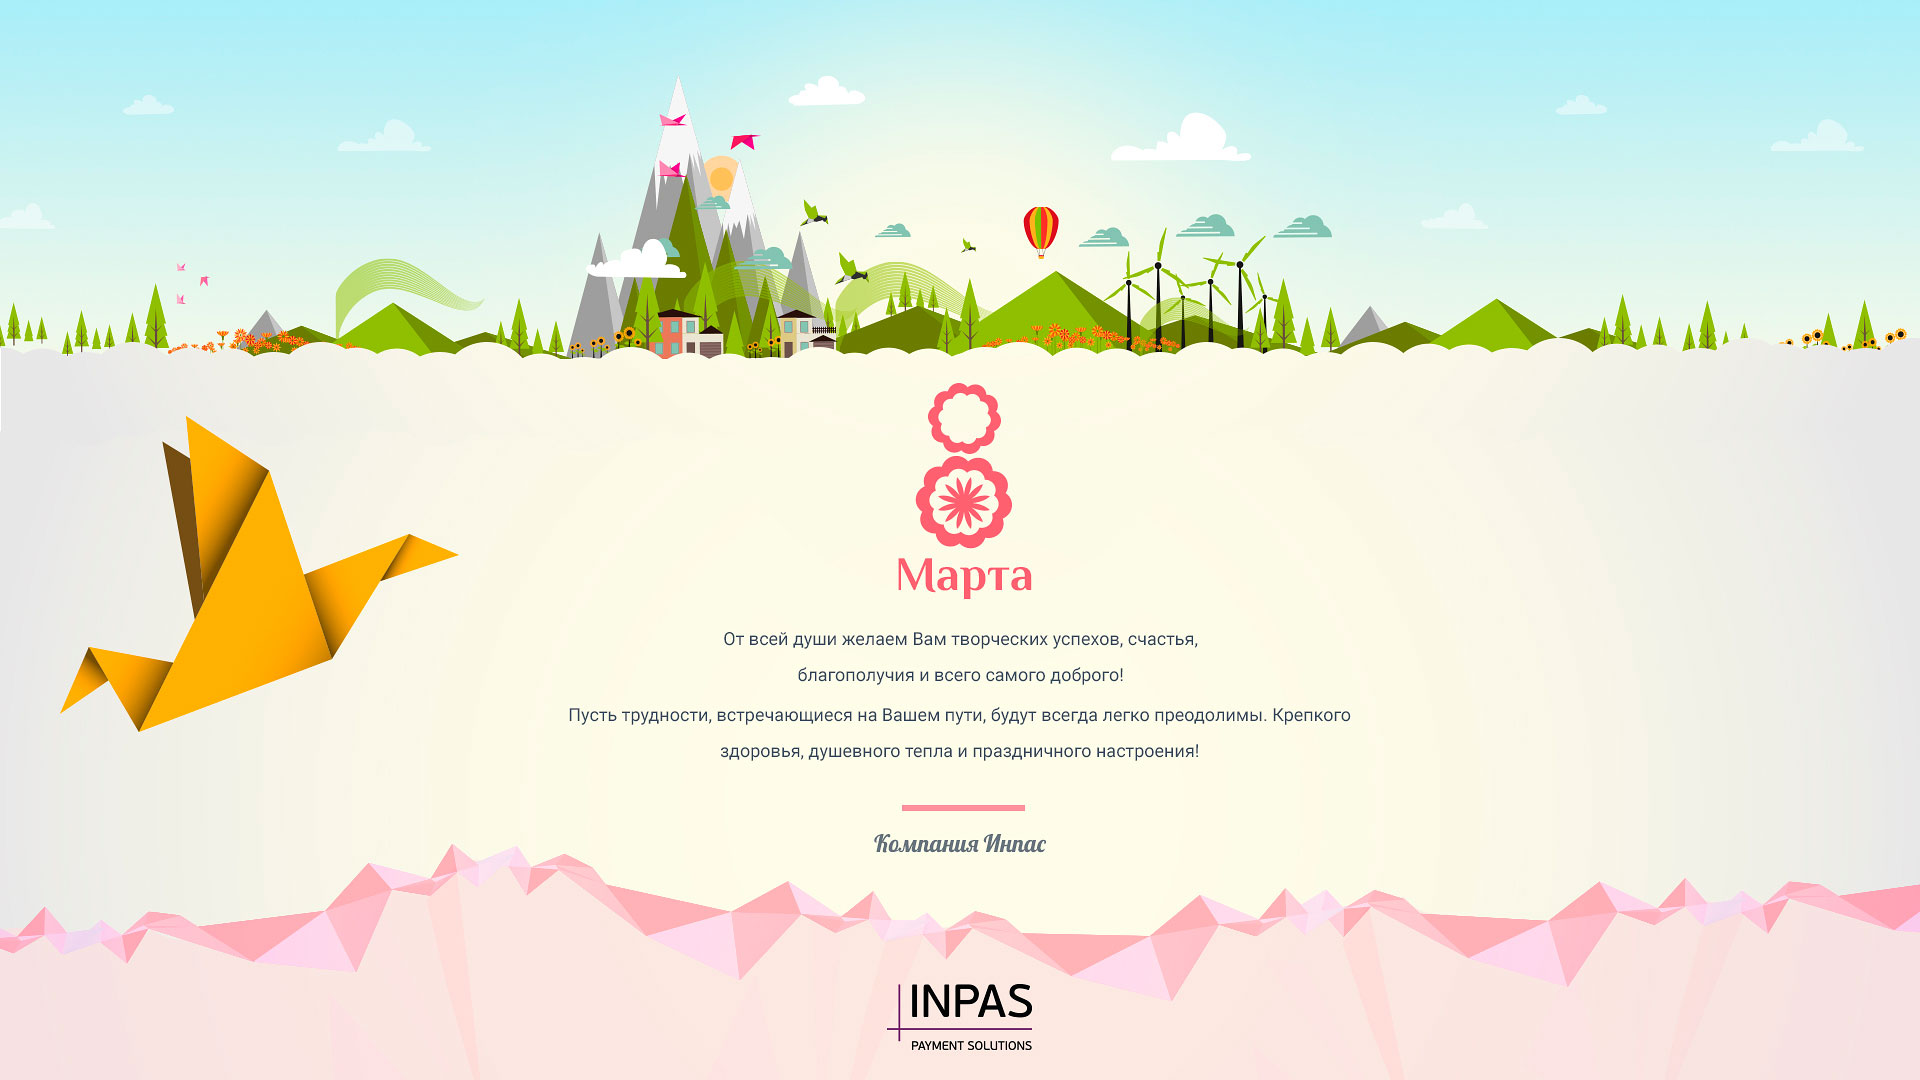 INPAS: banner for March, 8